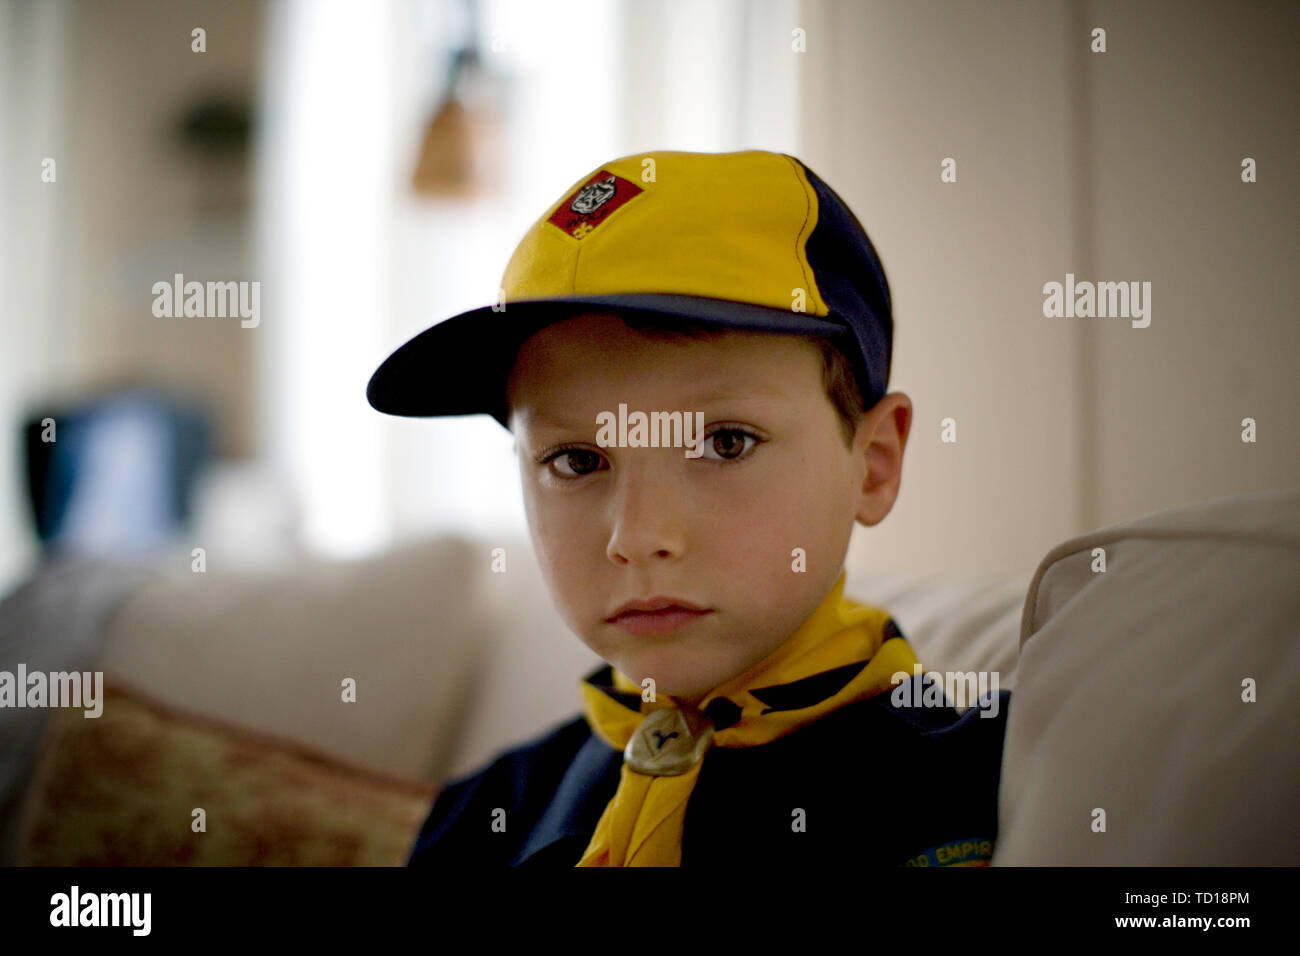 Portrait of a young boy wearing a scouts uniform. - Stock Image